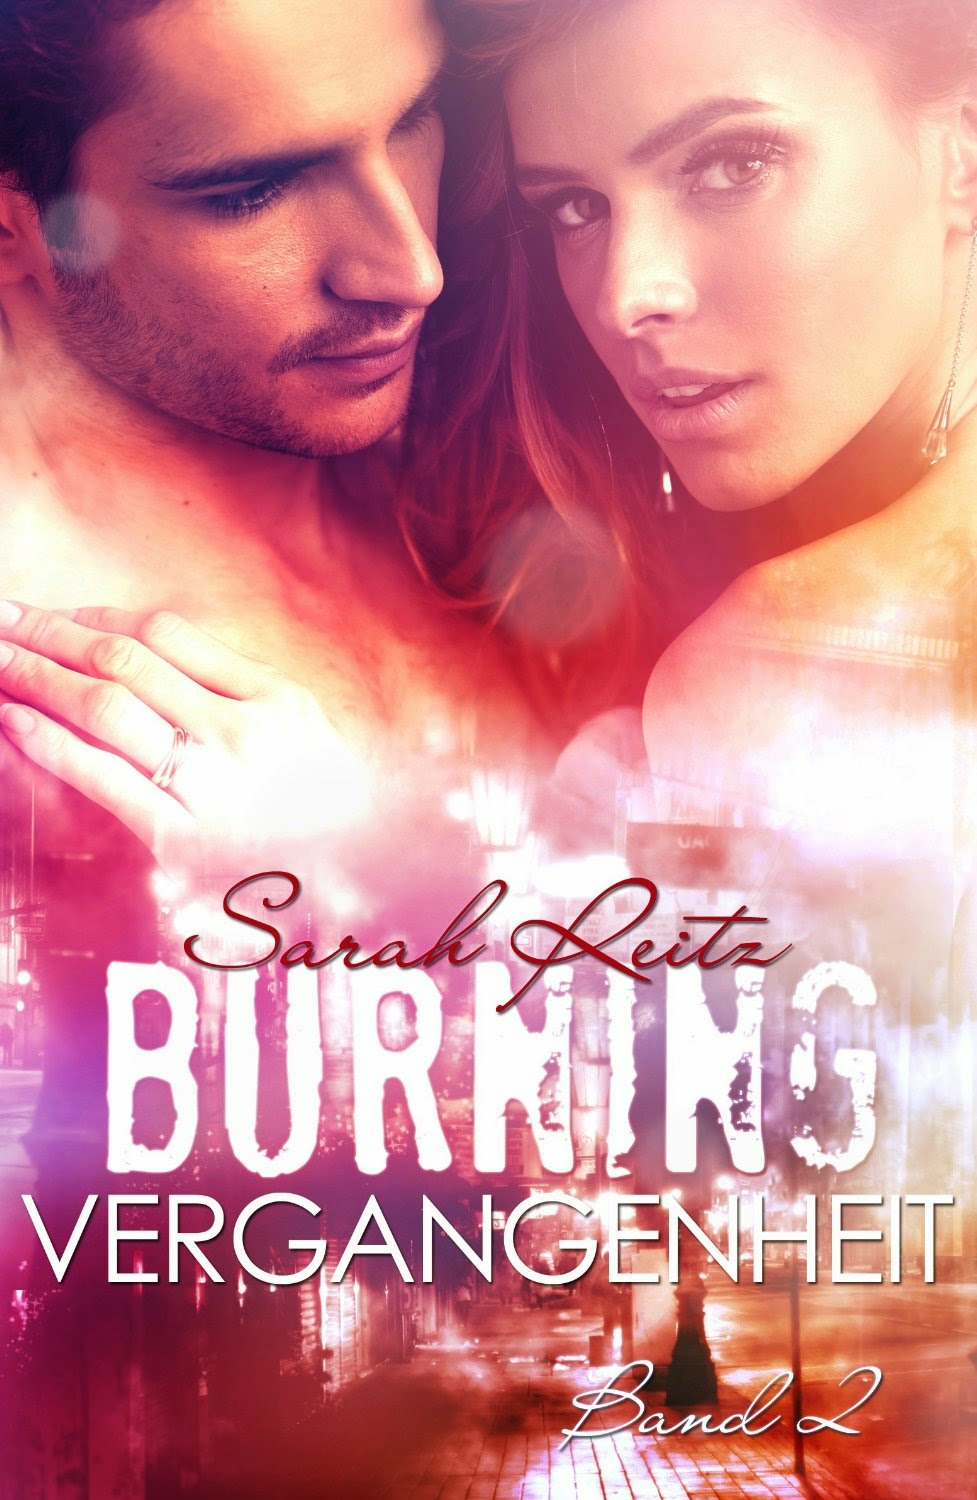 http://www.amazon.de/Burning-Vergangenheit-Band-Sarah-Reitz-ebook/dp/B00R75RTBE/ref=sr_1_1?s=books&ie=UTF8&qid=1423158934&sr=1-1&keywords=burning+-+vergangenheit